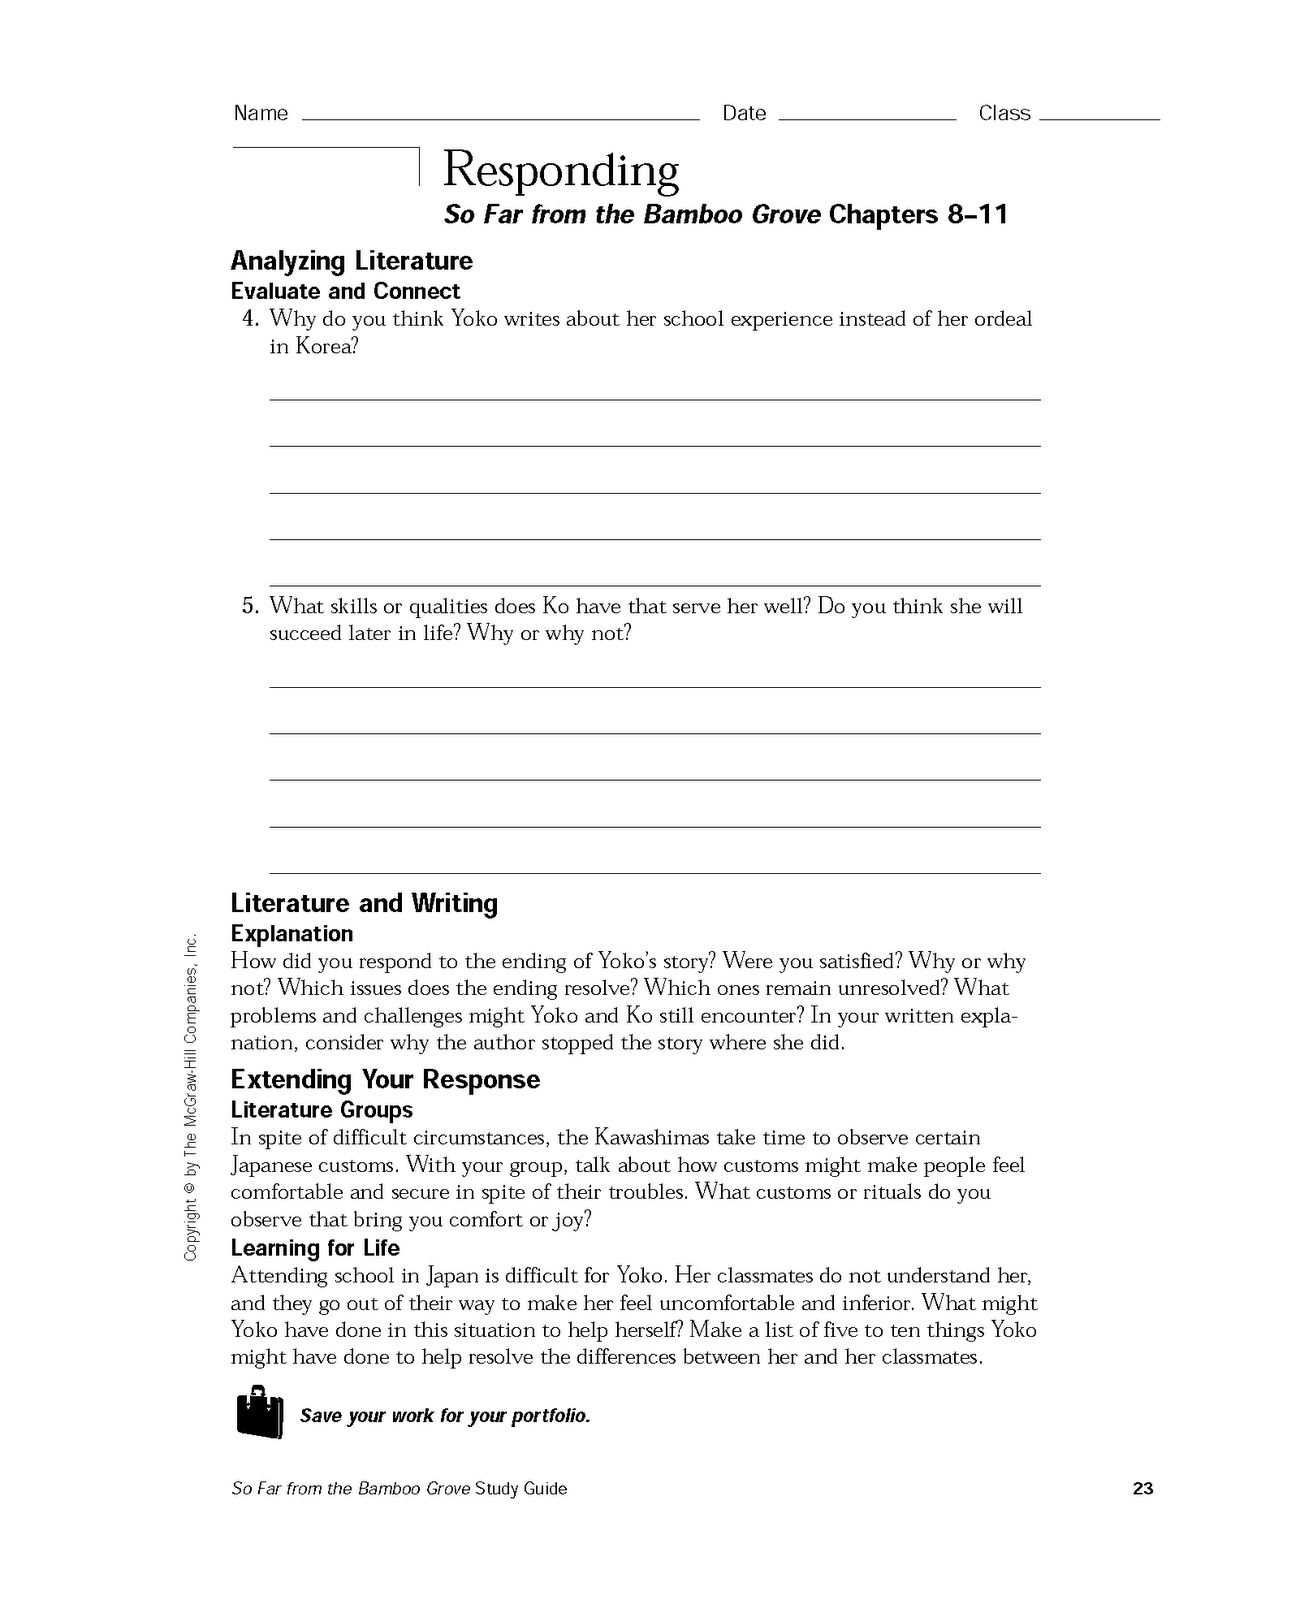 great expectations study guide answers mcgraw Science Study Guide Answers Night Study Guide Key Questions